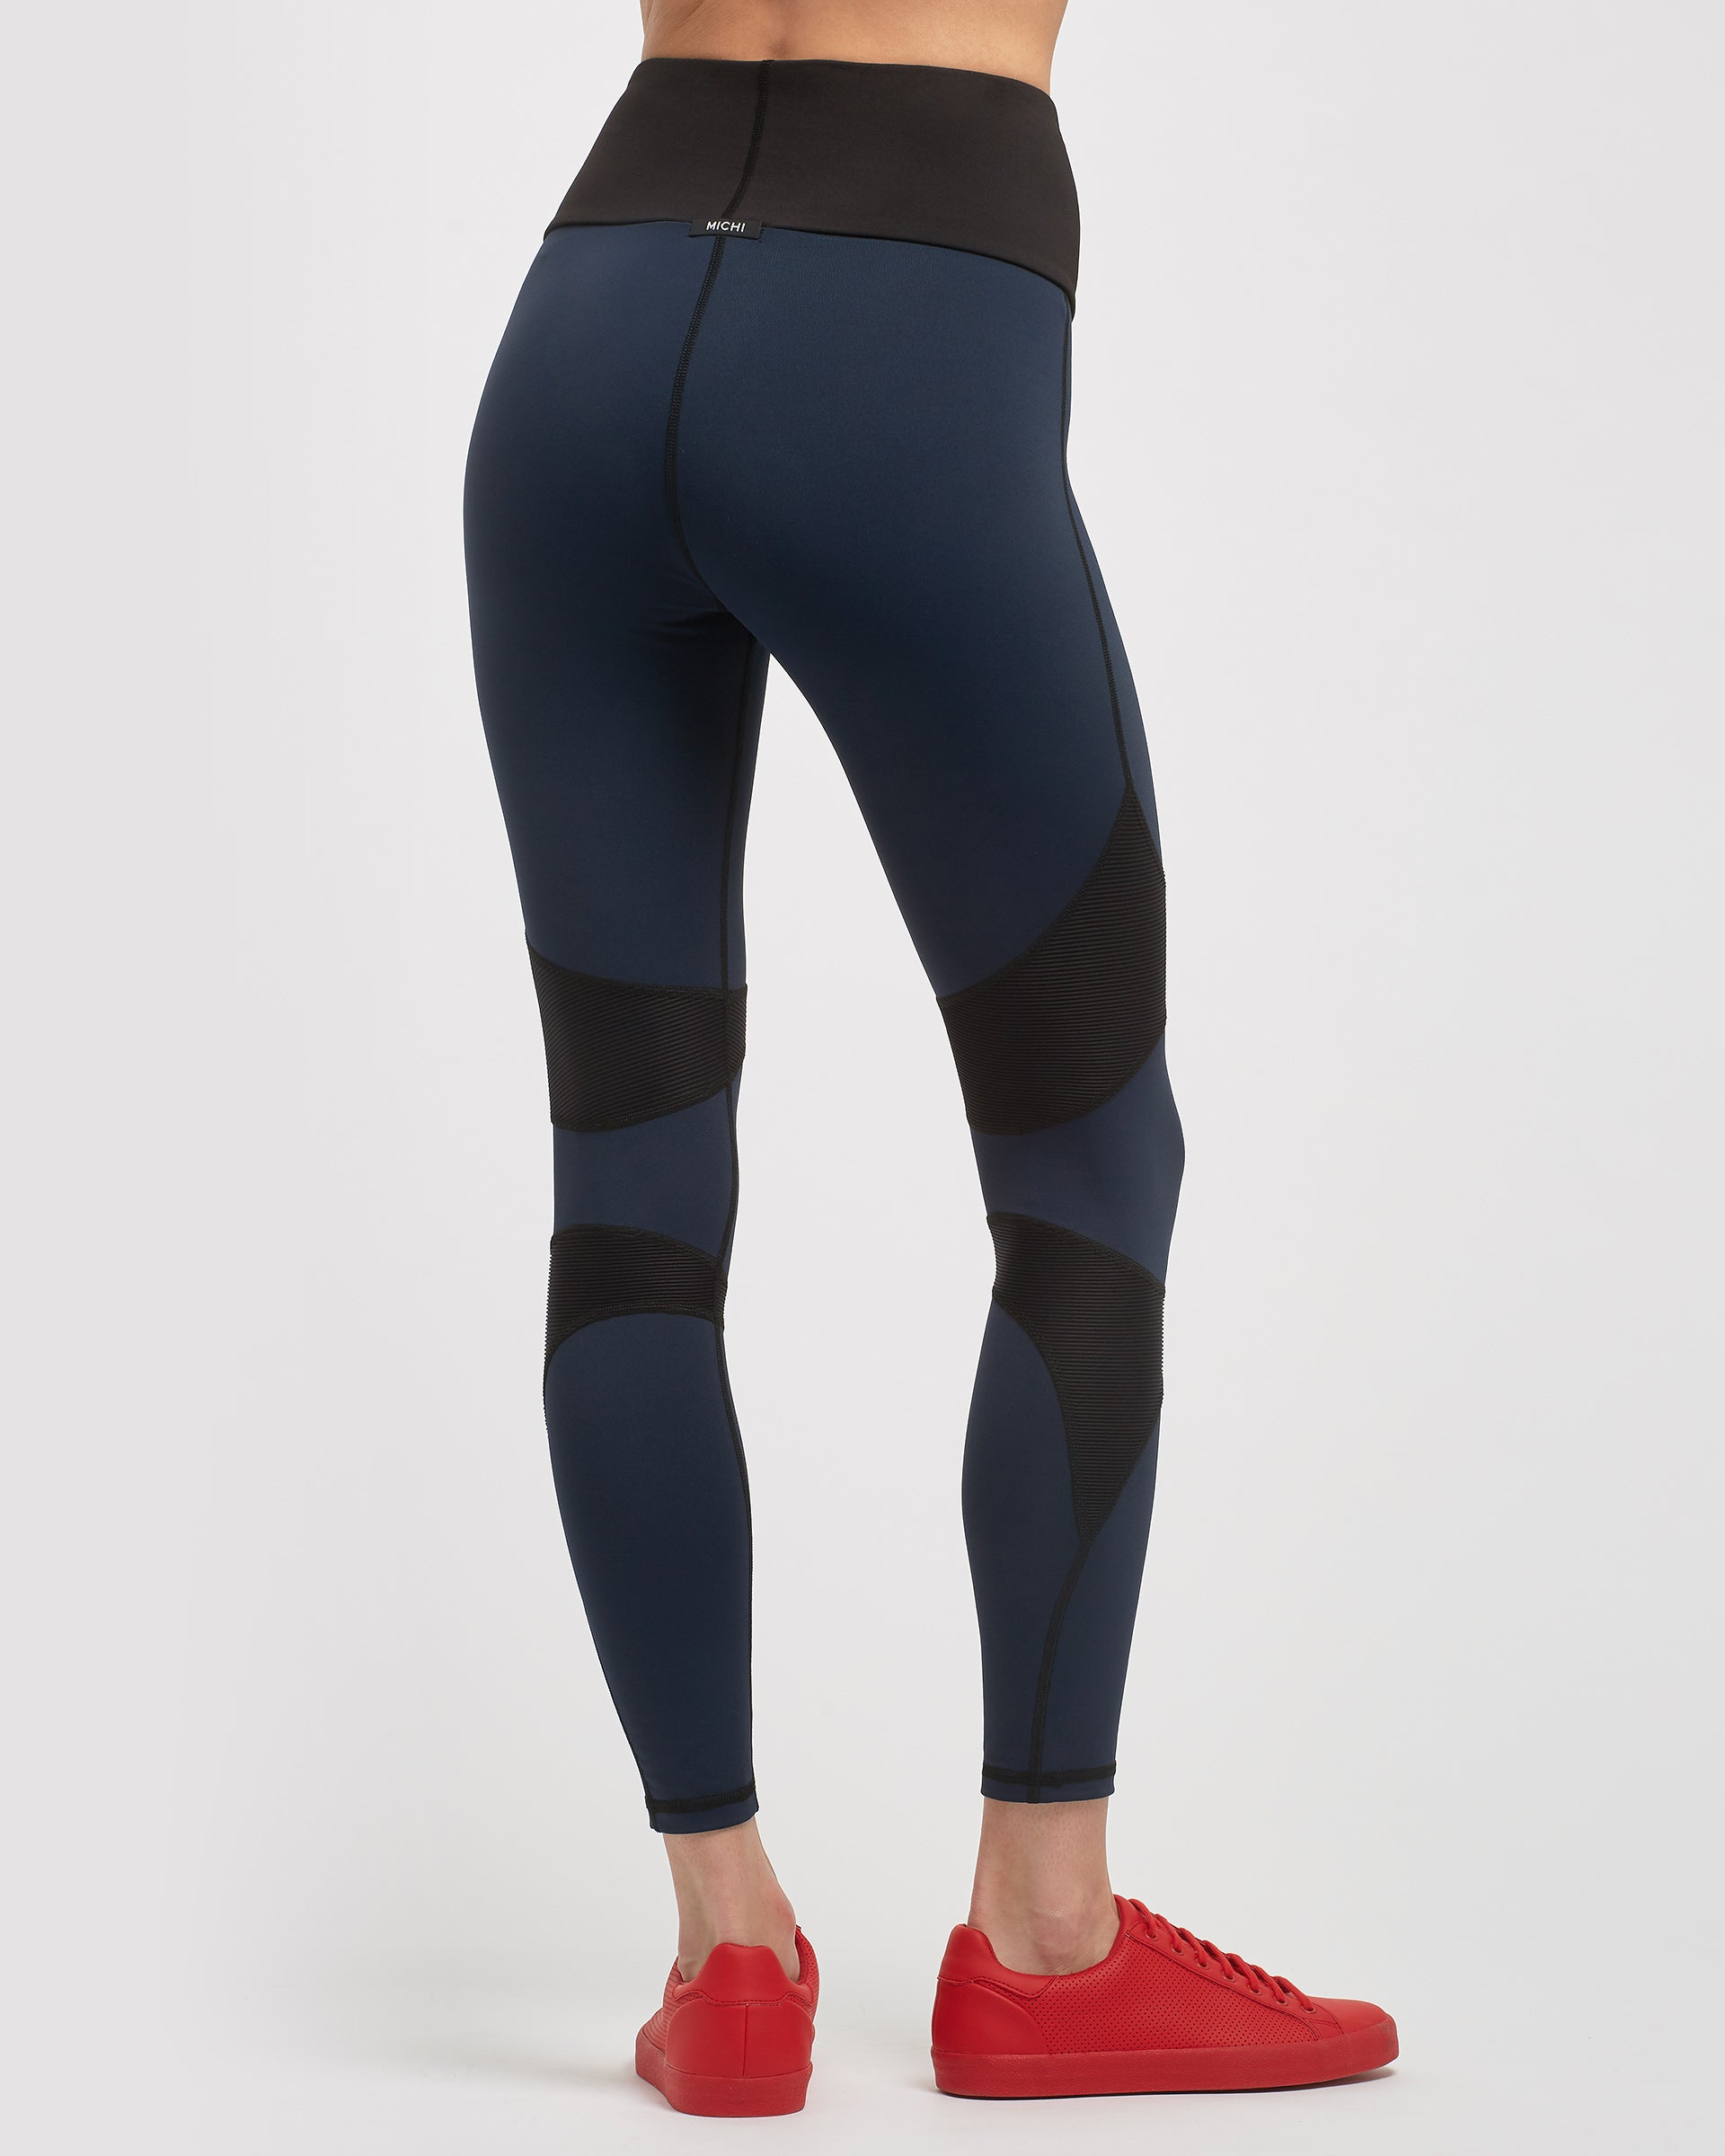 drift-high-waisted-legging-deep-sea-navy